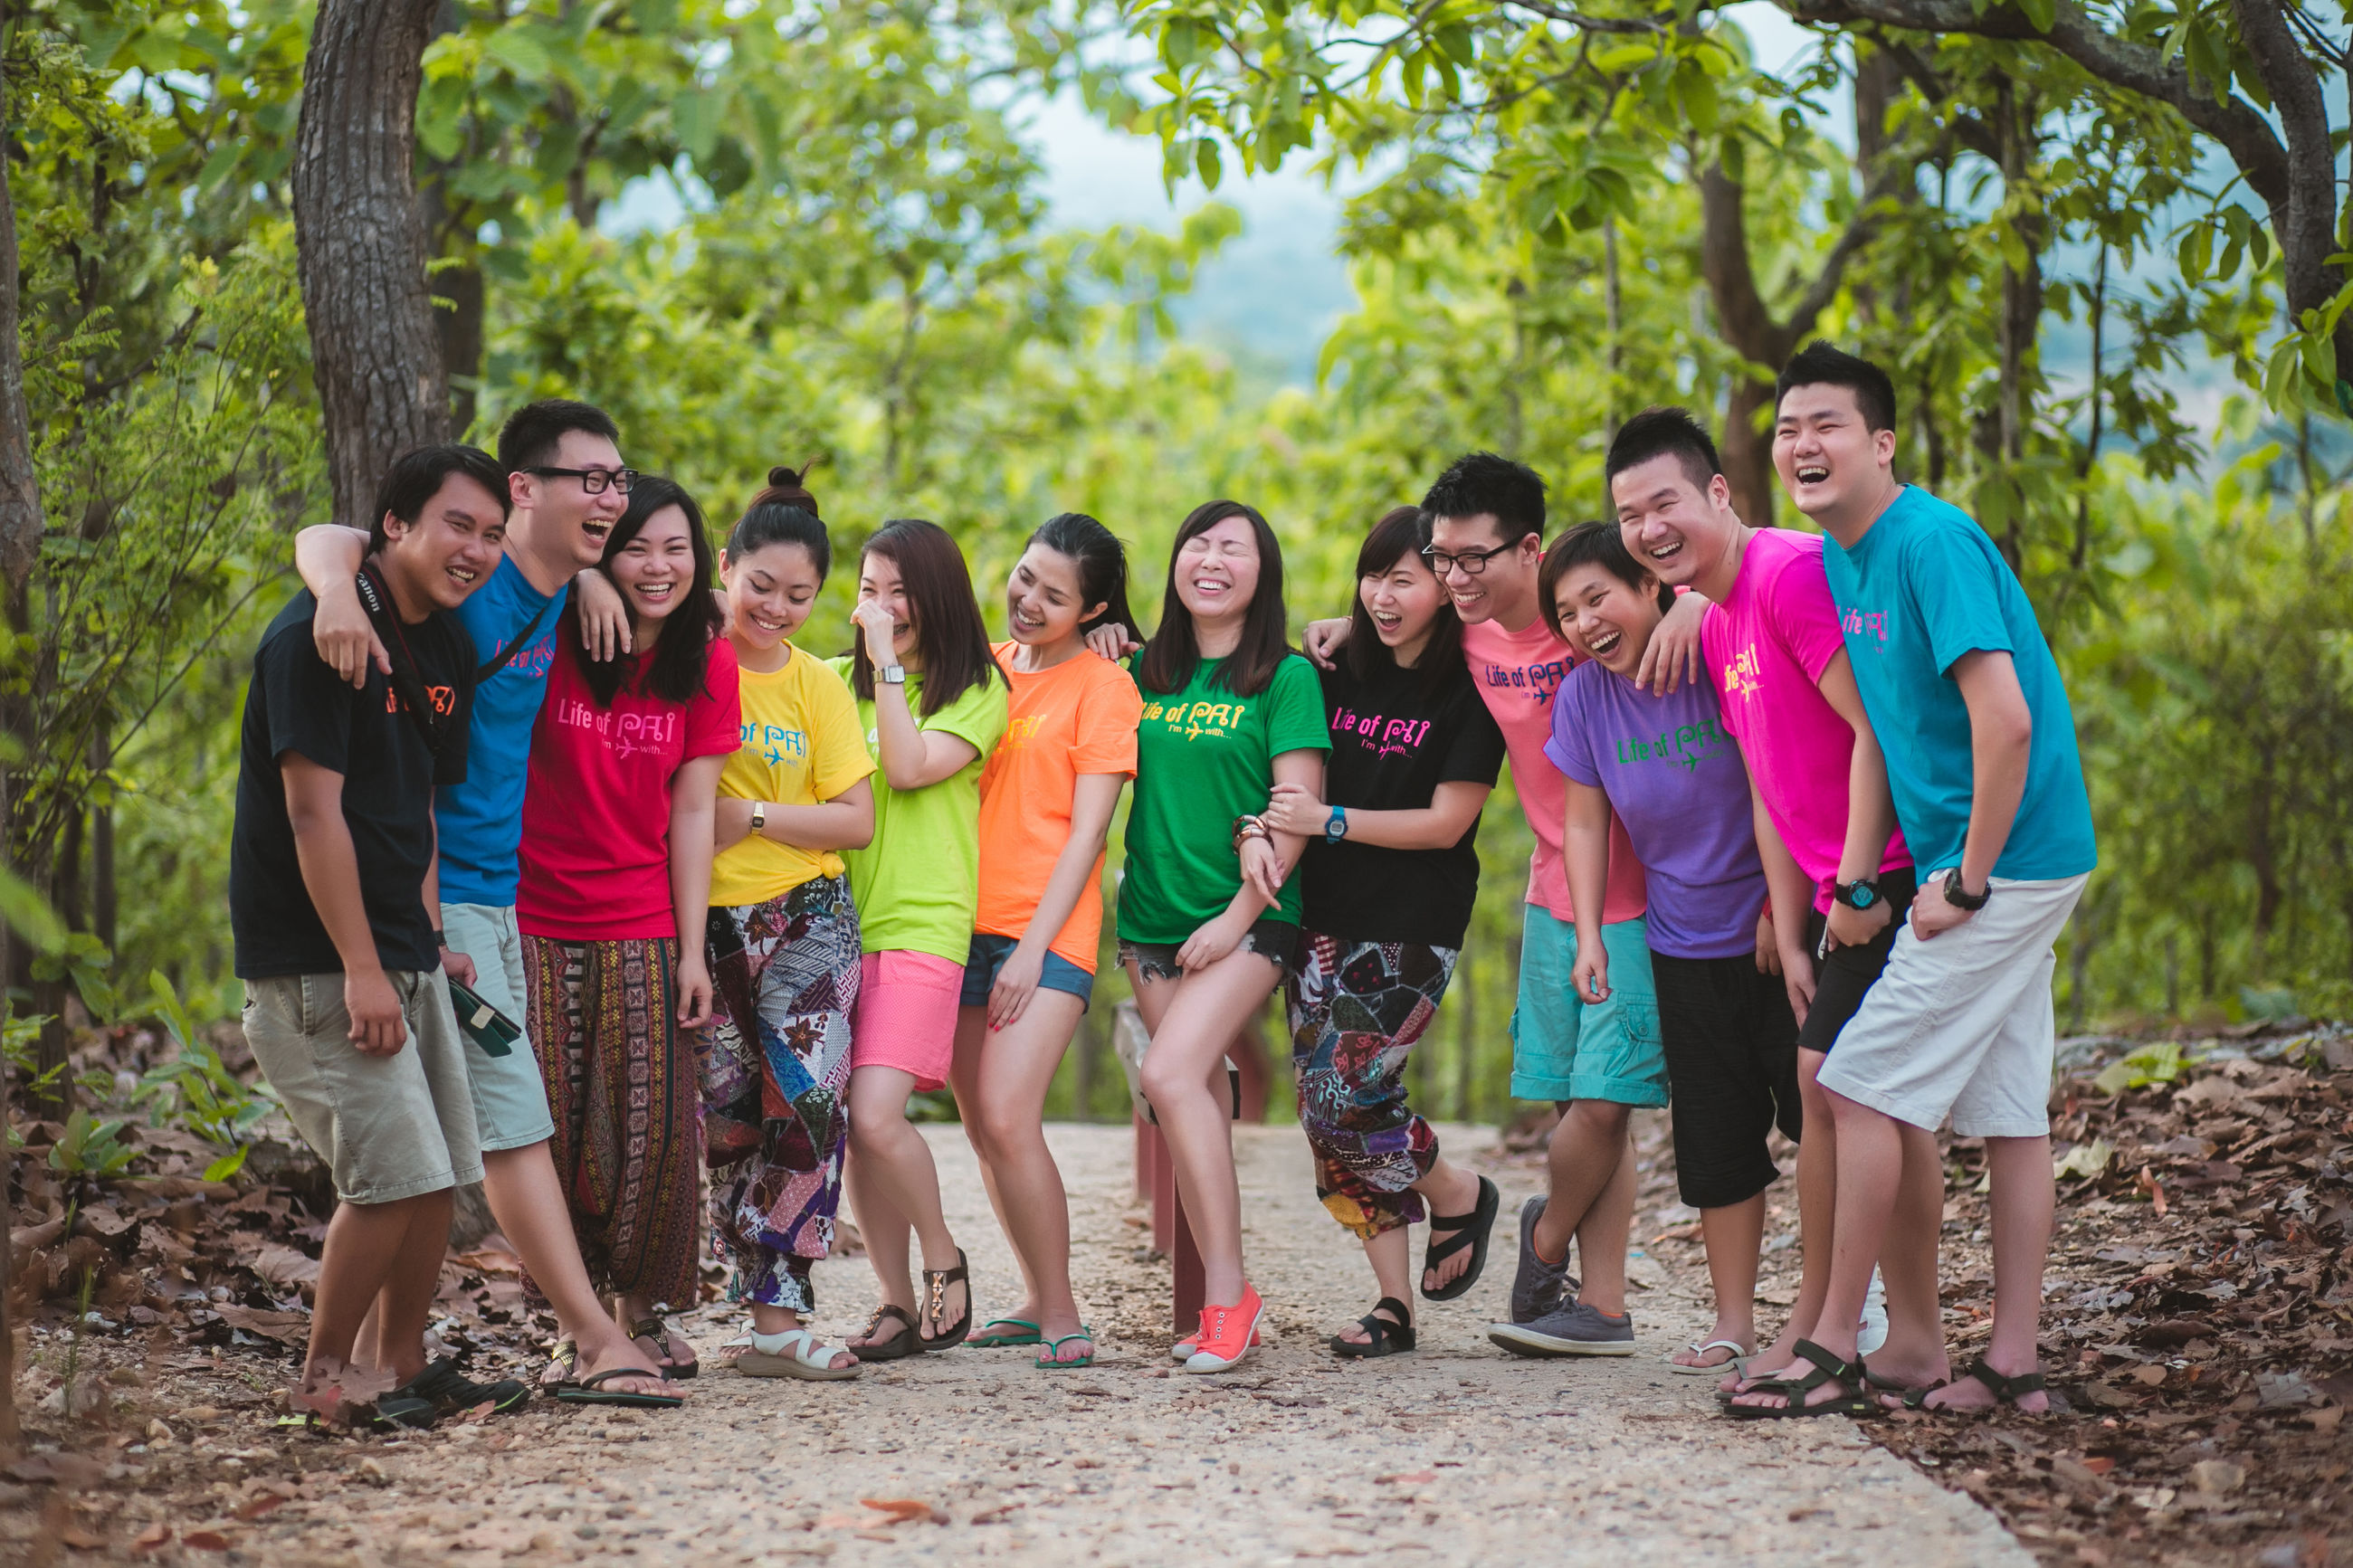 young adult, young women, happiness, looking at camera, tree, smiling, casual clothing, day, outdoors, togetherness, portrait, medium group of people, leisure activity, fun, excitement, cheerful, real people, forest, friendship, standing, full length, lifestyles, nature, adult, people